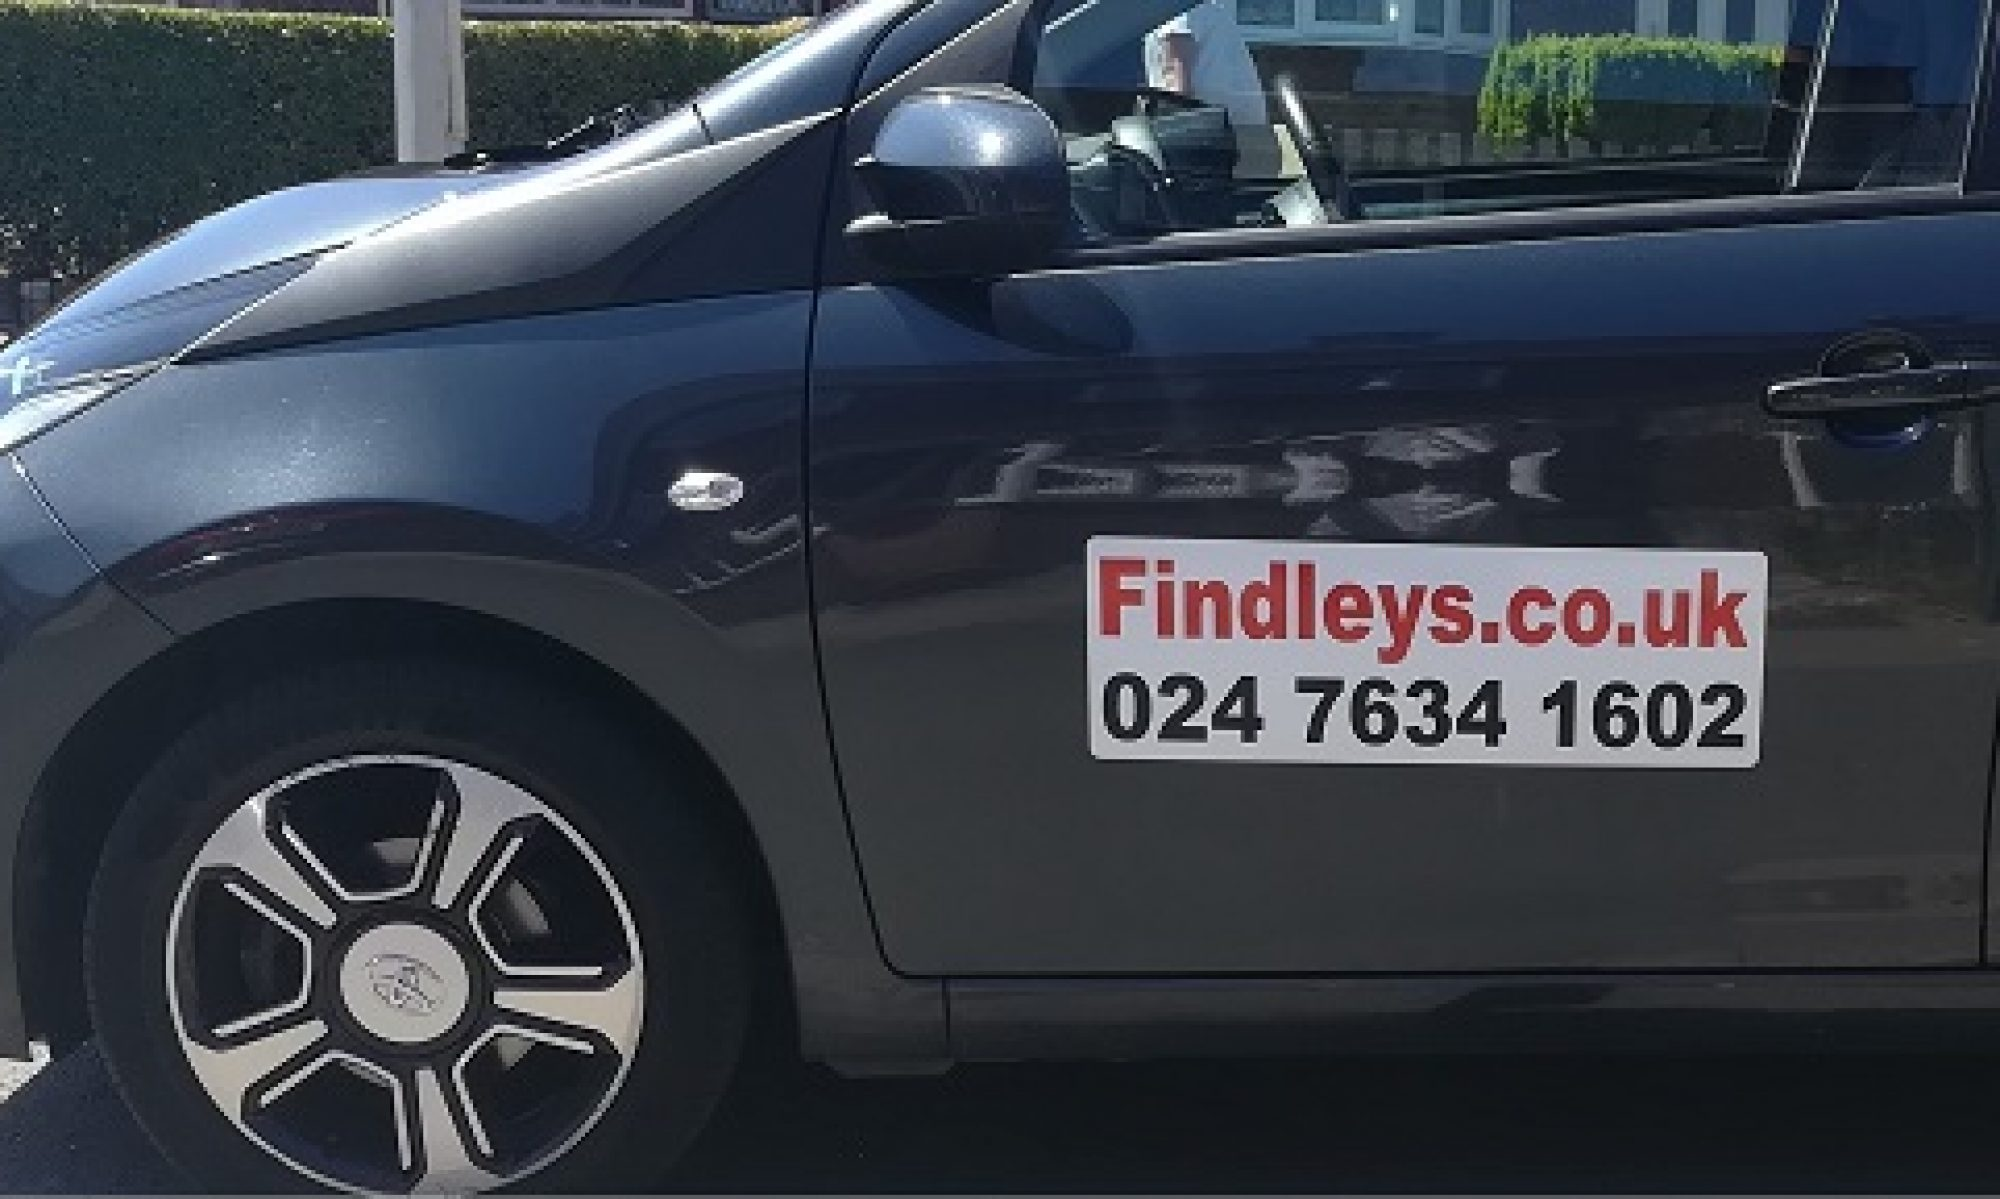 Findleys Driving School Blog